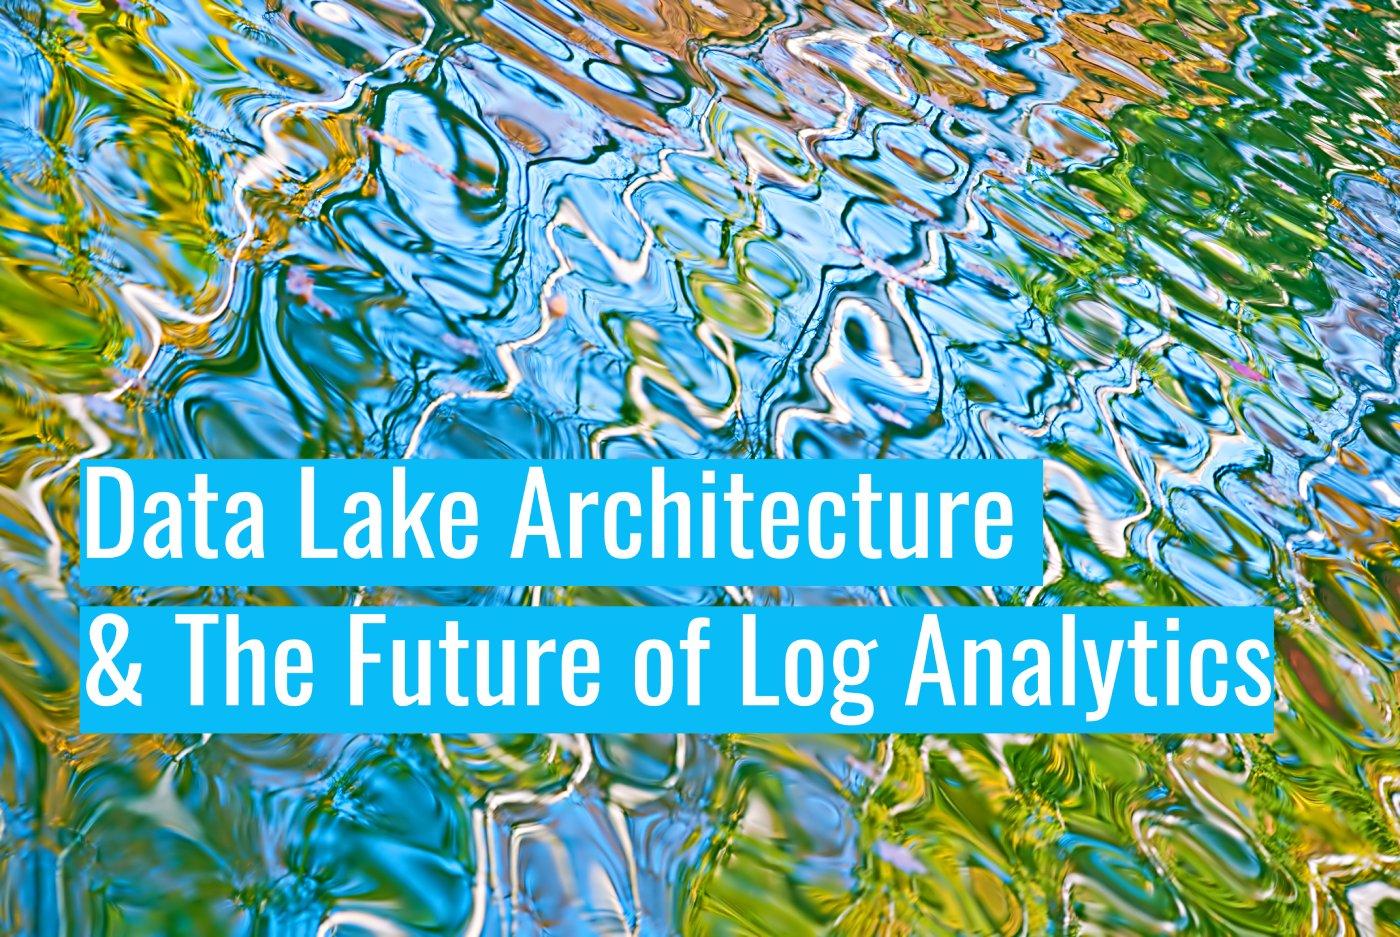 Data Lake Architecture & The Future of Log Analytics